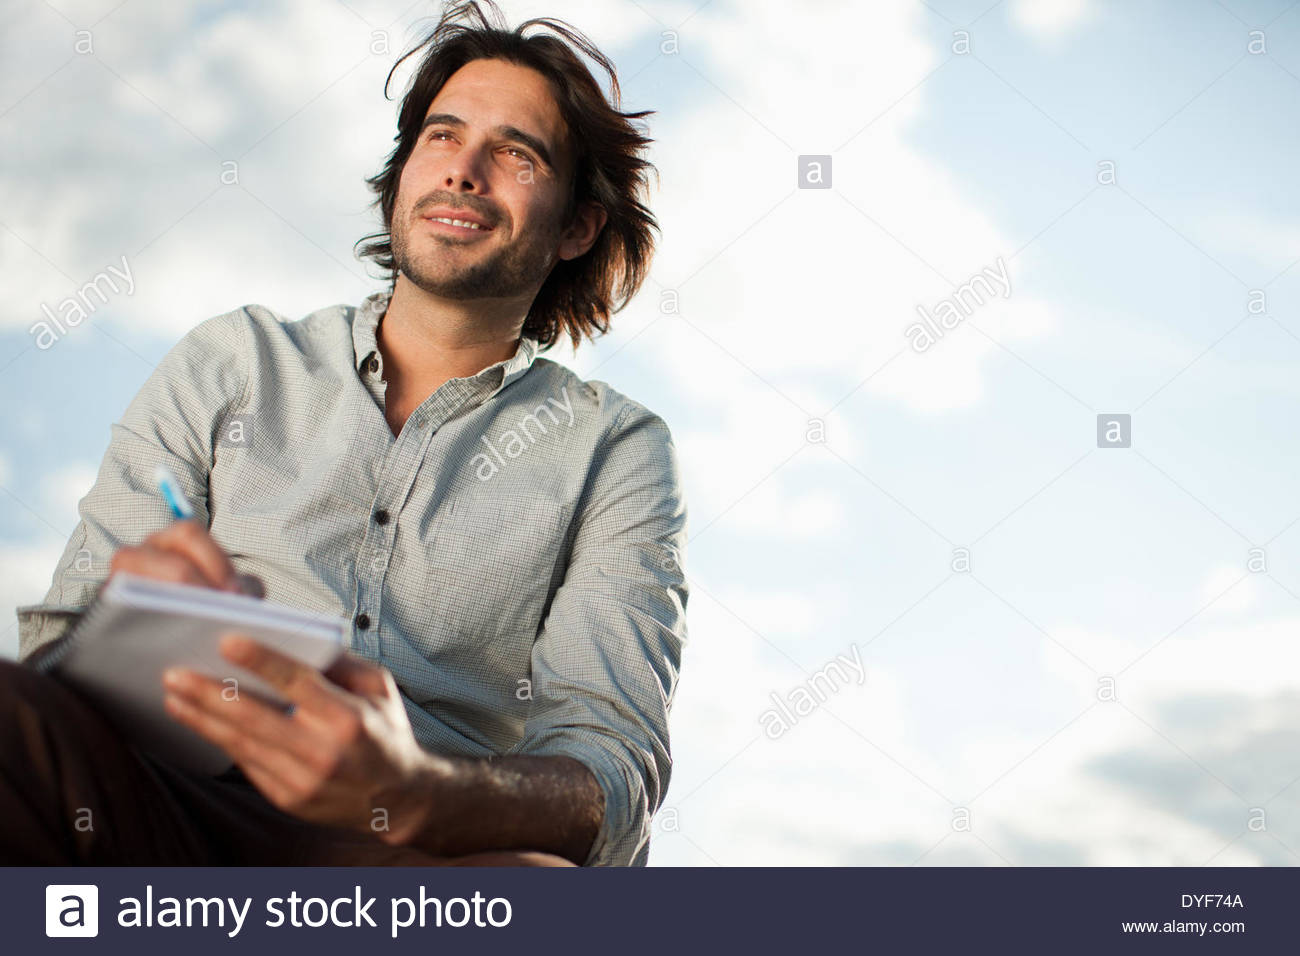 Pensive businessman writing in notebook outdoors - Stock Image